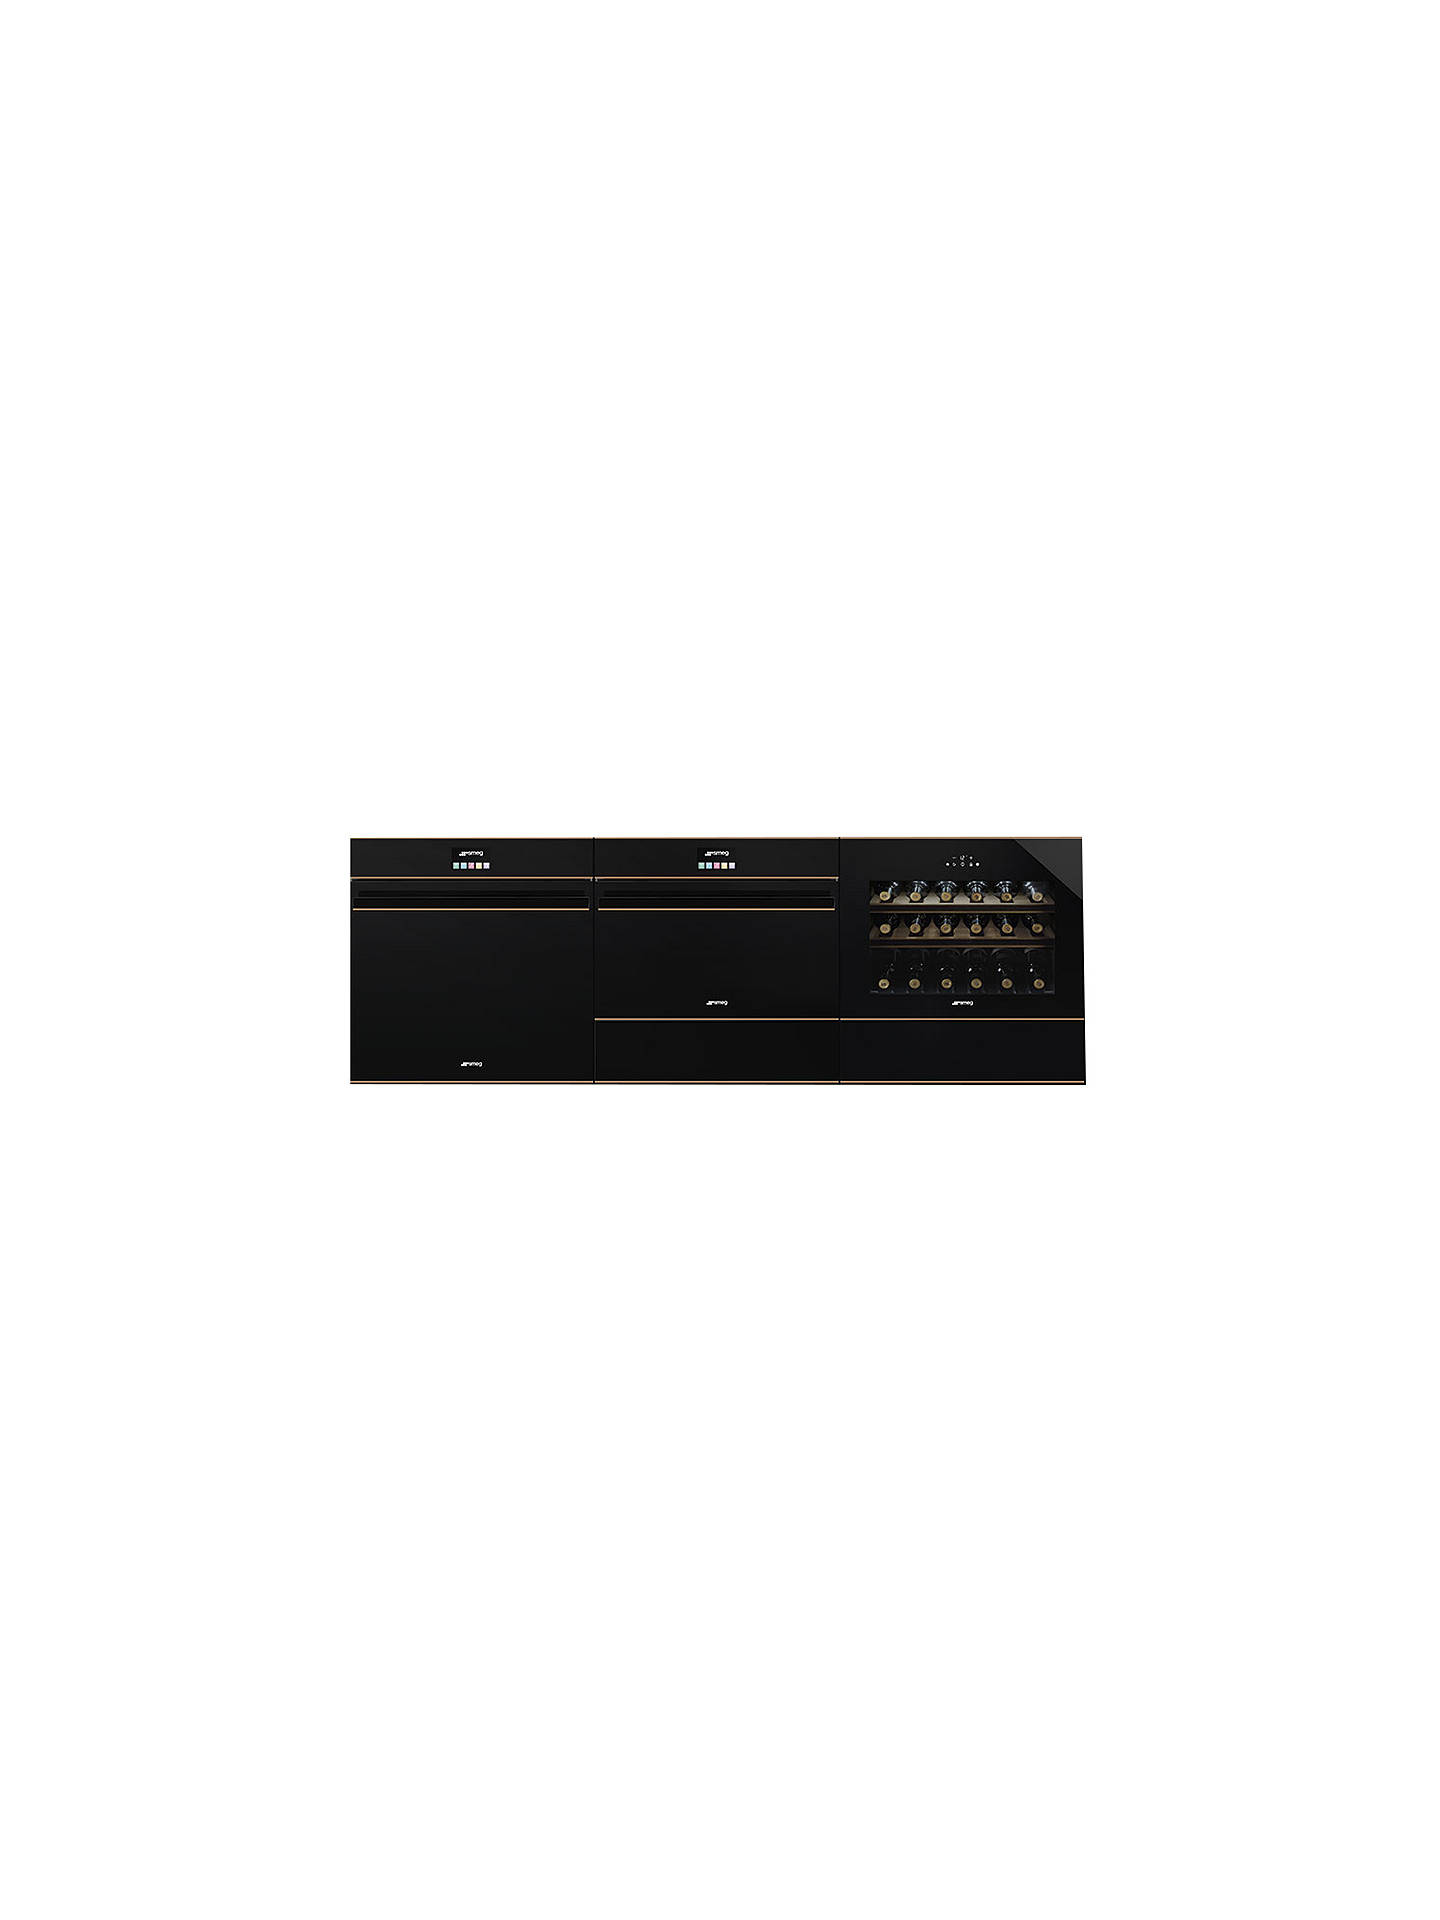 Buy Smeg SF4604MCNR Dolce Stil Novo Integrated Combination Microwave Oven, Black/Copper Online at johnlewis.com